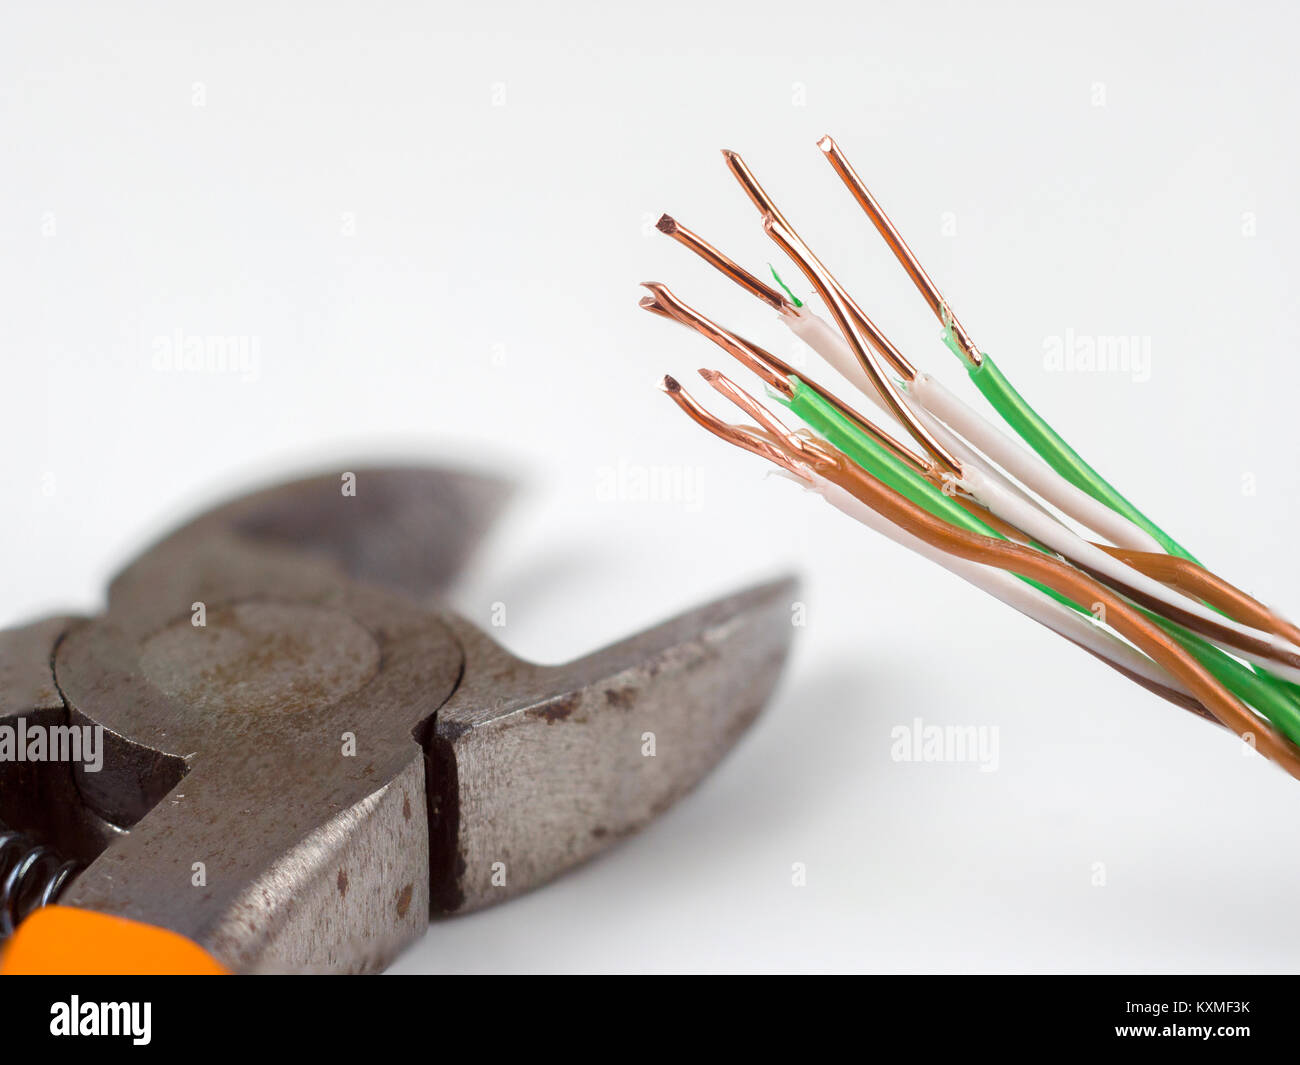 Electric Metal Wire Cutter Stock Photos Electronics Electricity Gt Optical Fiber Cable Power Side Cutters And The Ends Of Peeled Copper Image